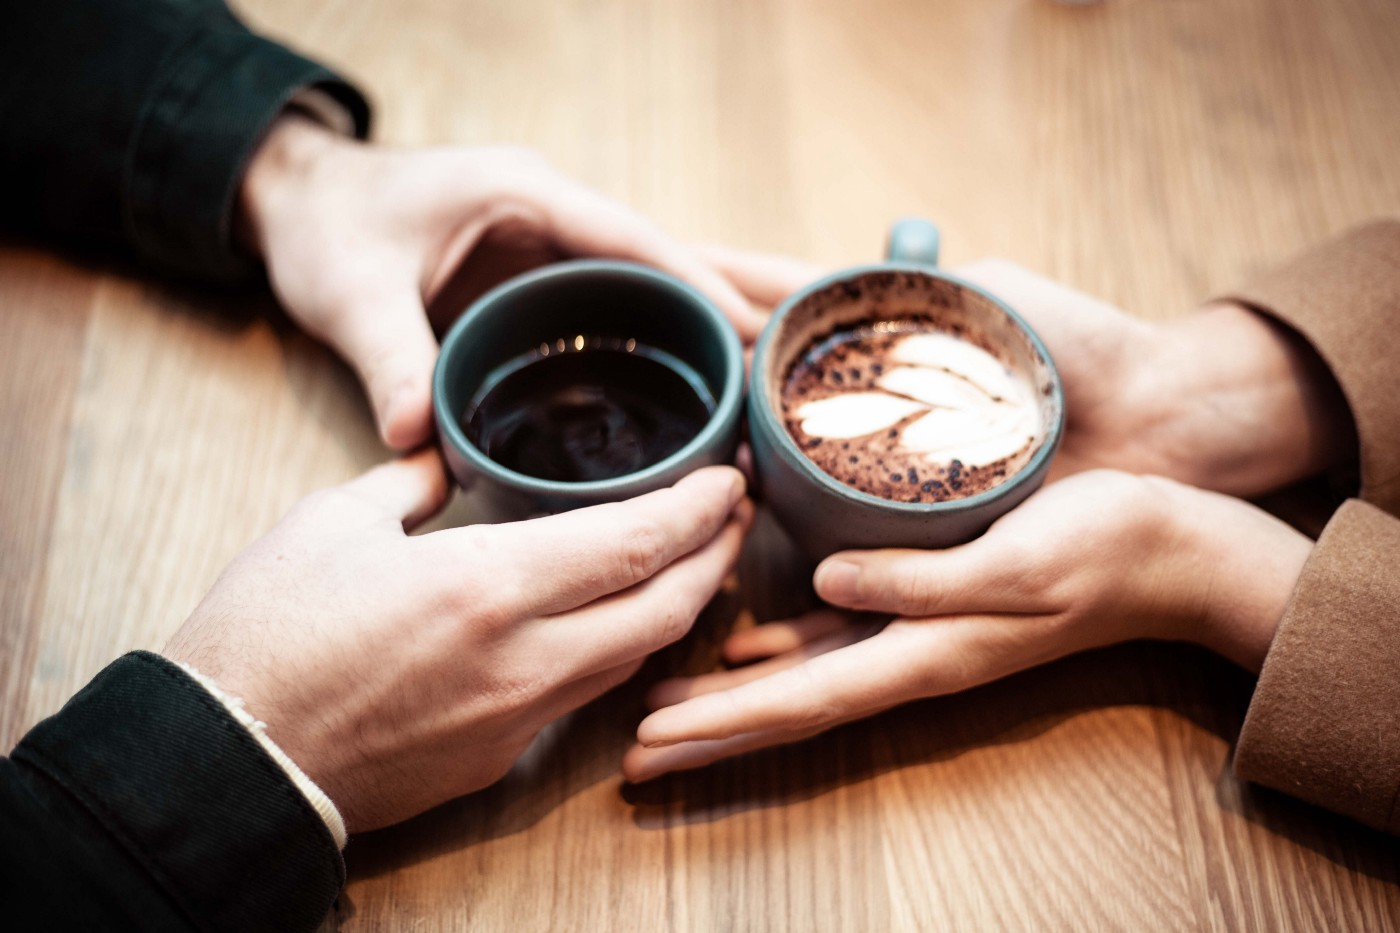 two people's hands holding coffee cups with their hands touching, as if on a date.